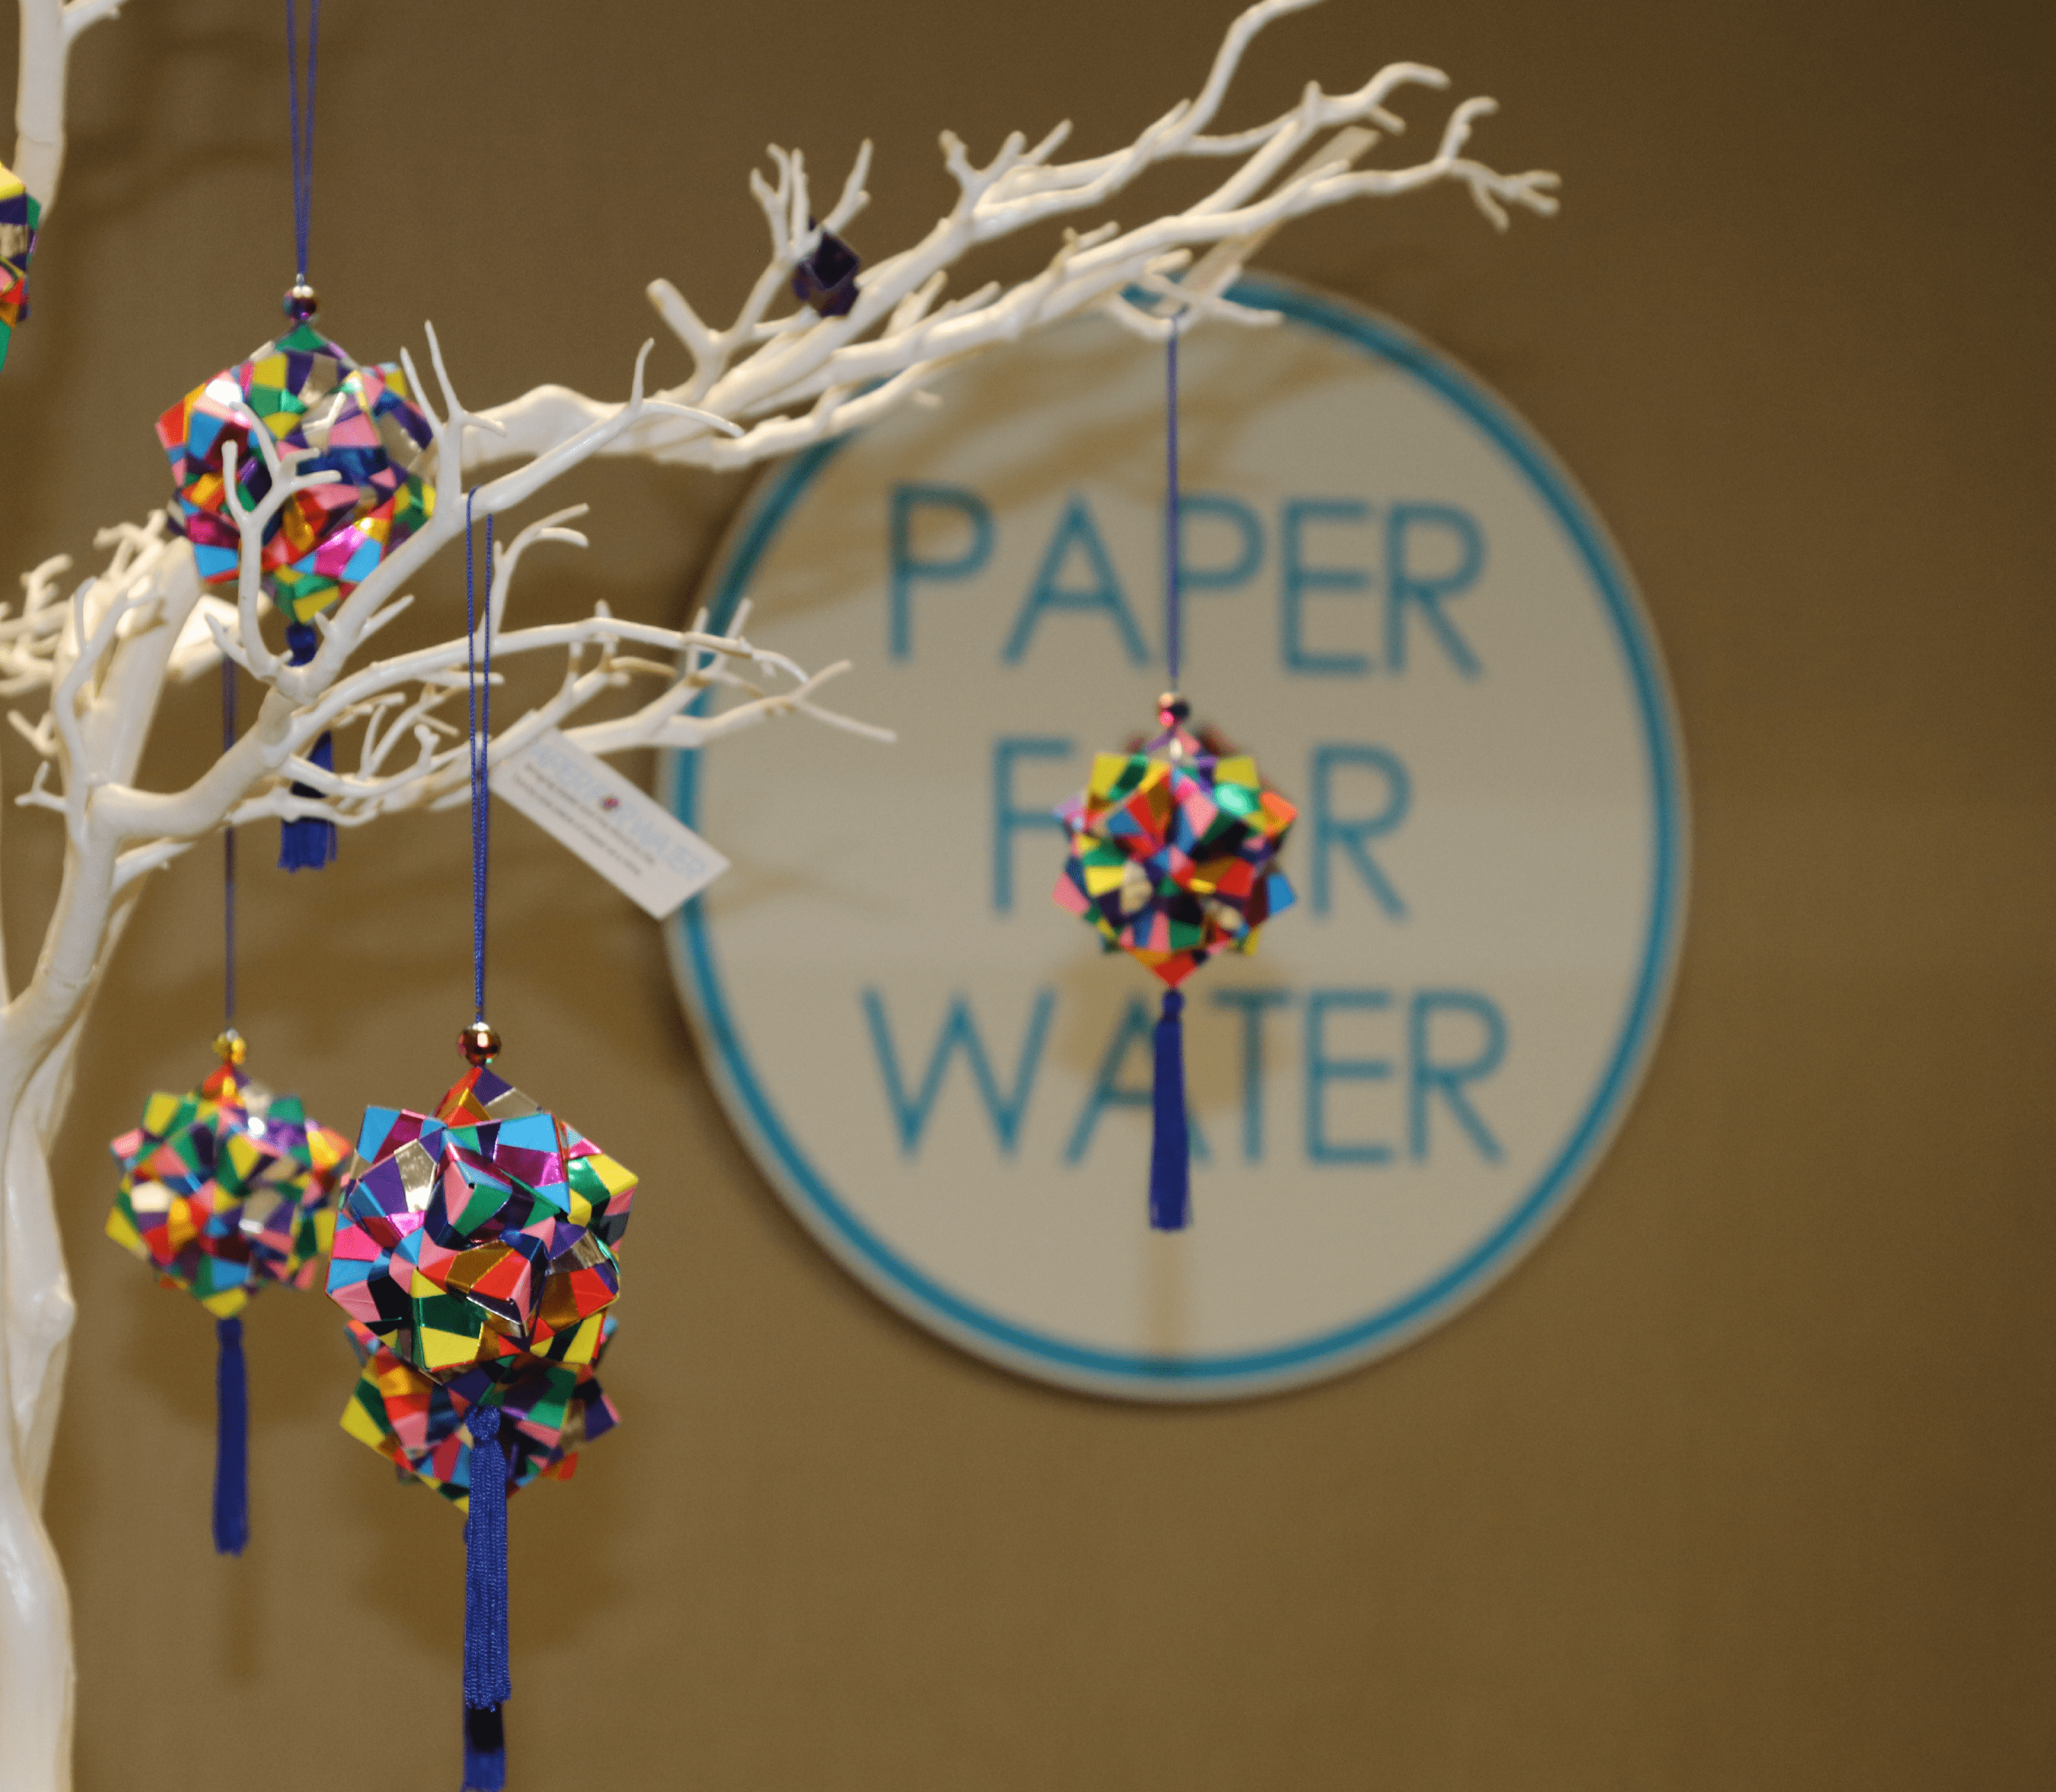 Logo paper for water 03